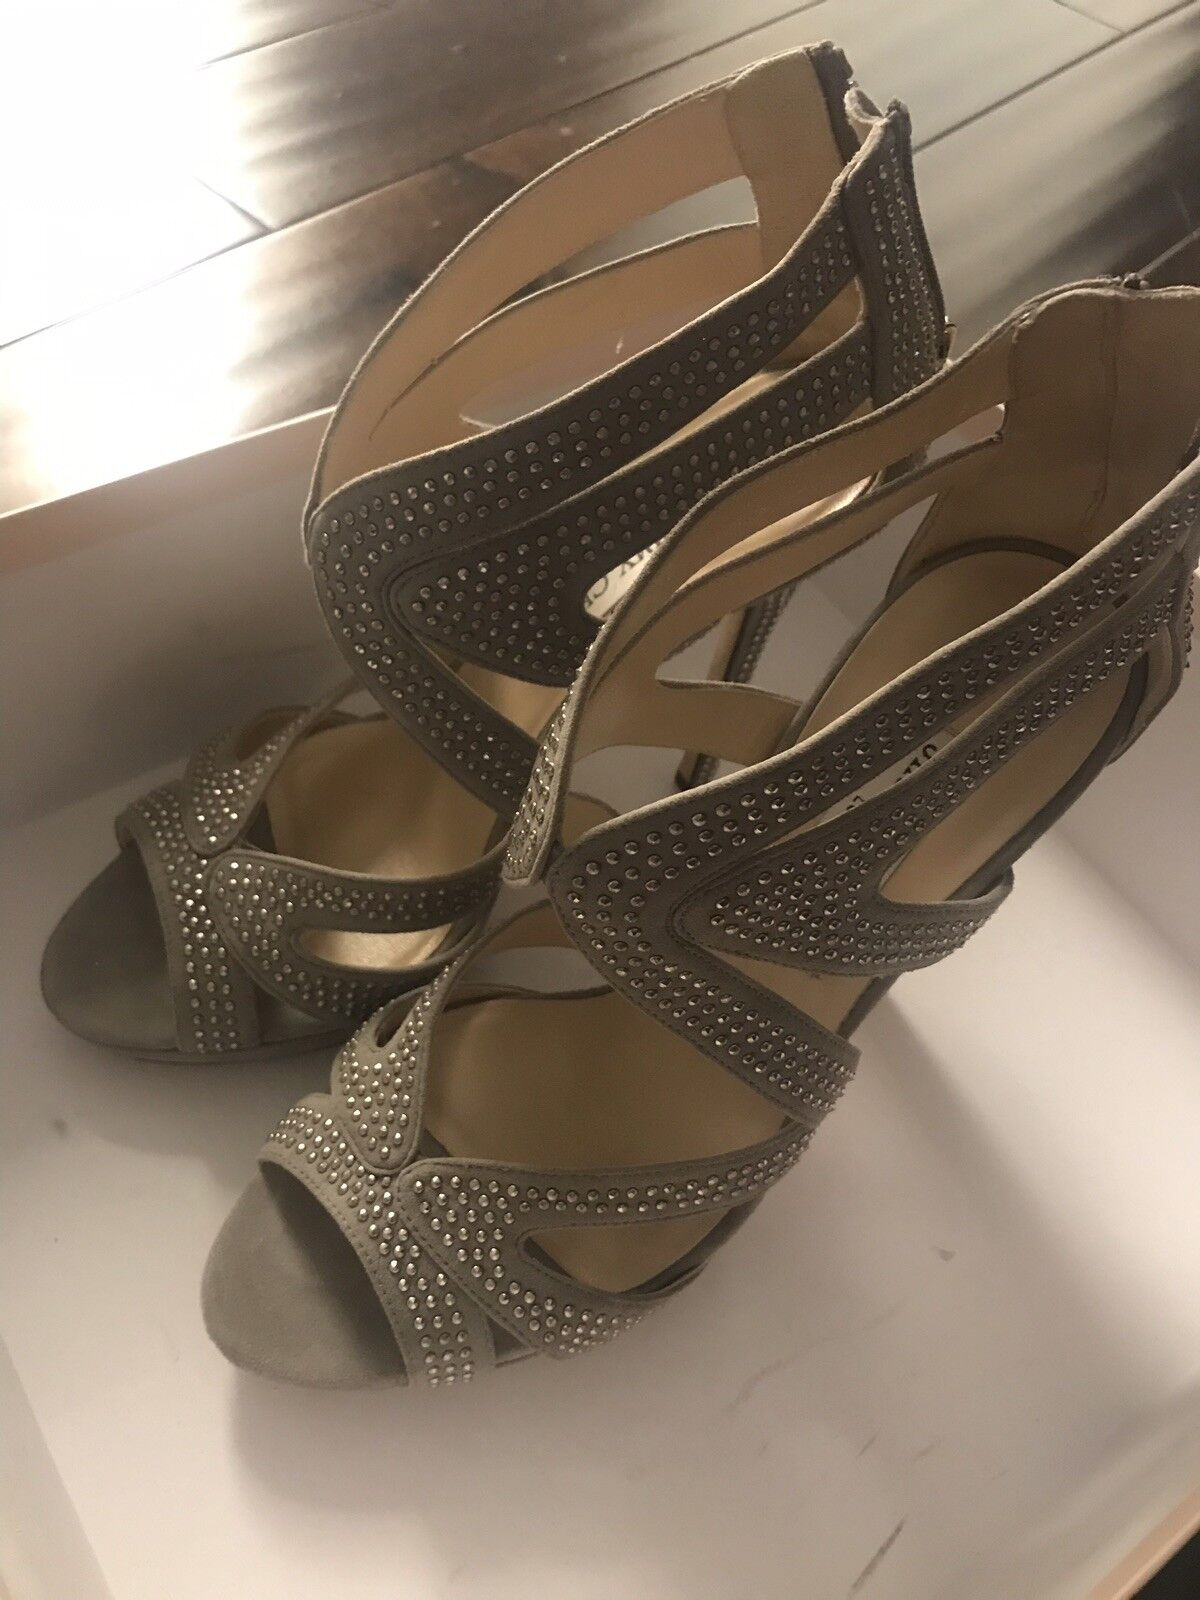 Jimmy Choo Womens Silver Leather Studded Strappy High Heel Sandals SZ 38 US 8